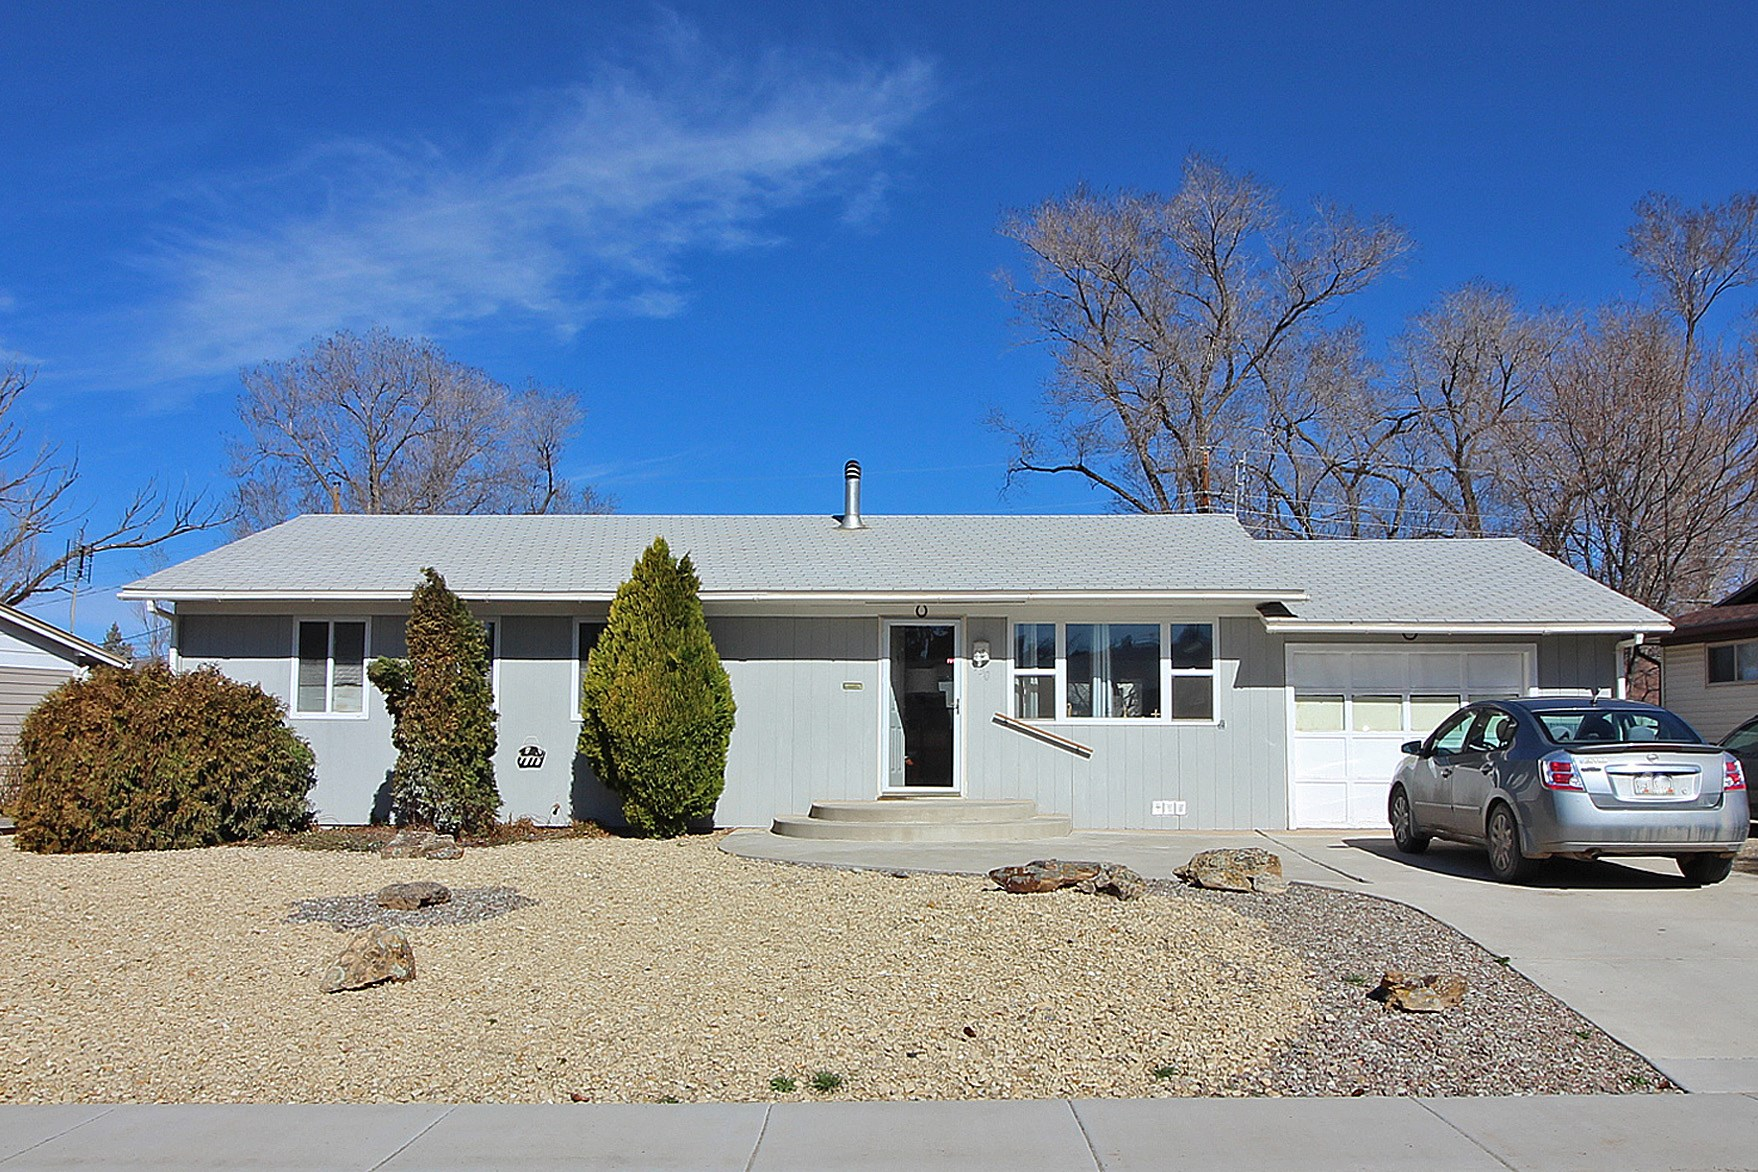 House for sale in town Cortez